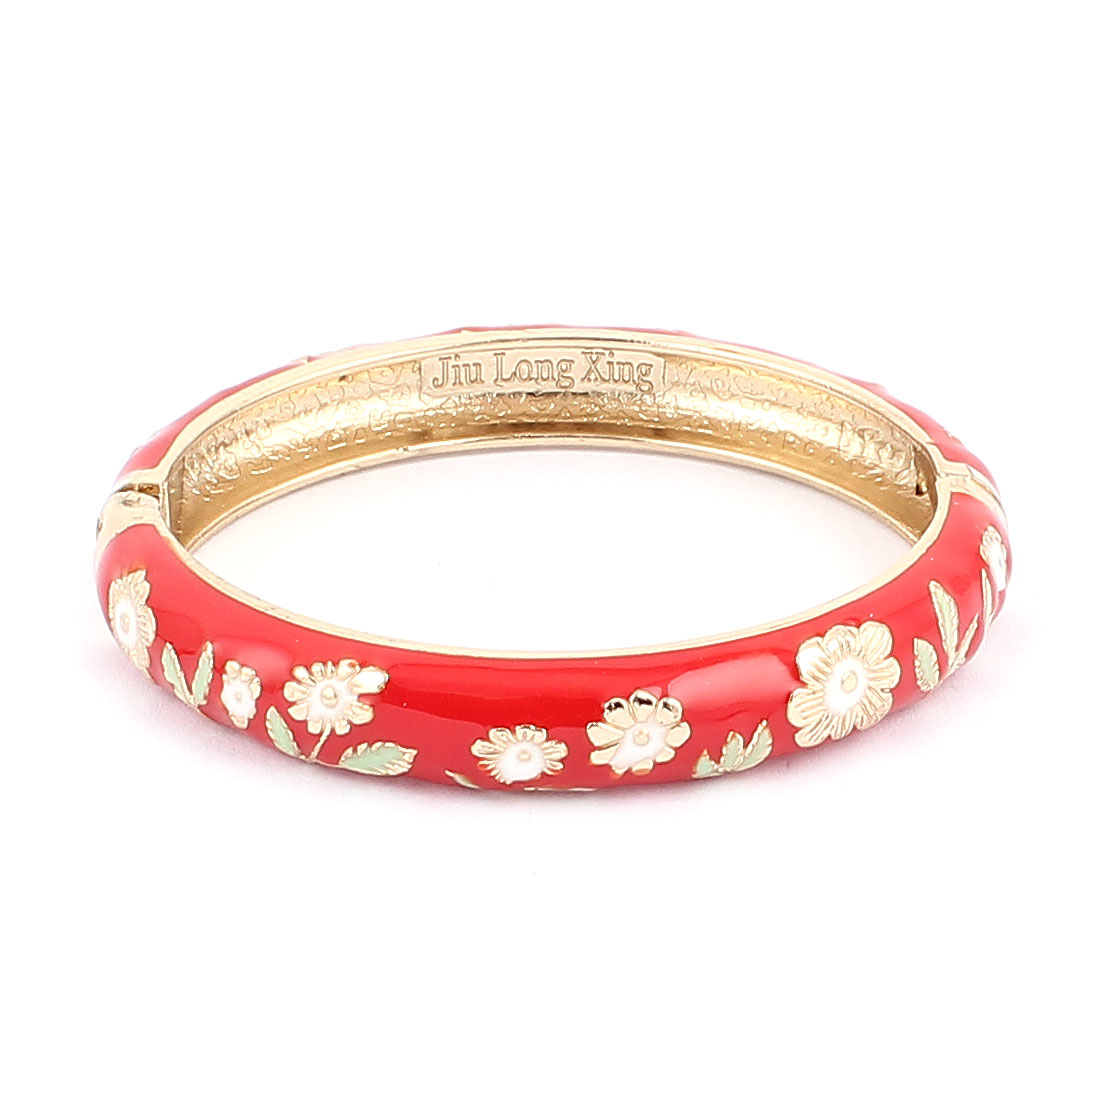 Woman Lady Spring Hinged Round Cuff Flower Pattern Enamel Bracelet Bangle Red